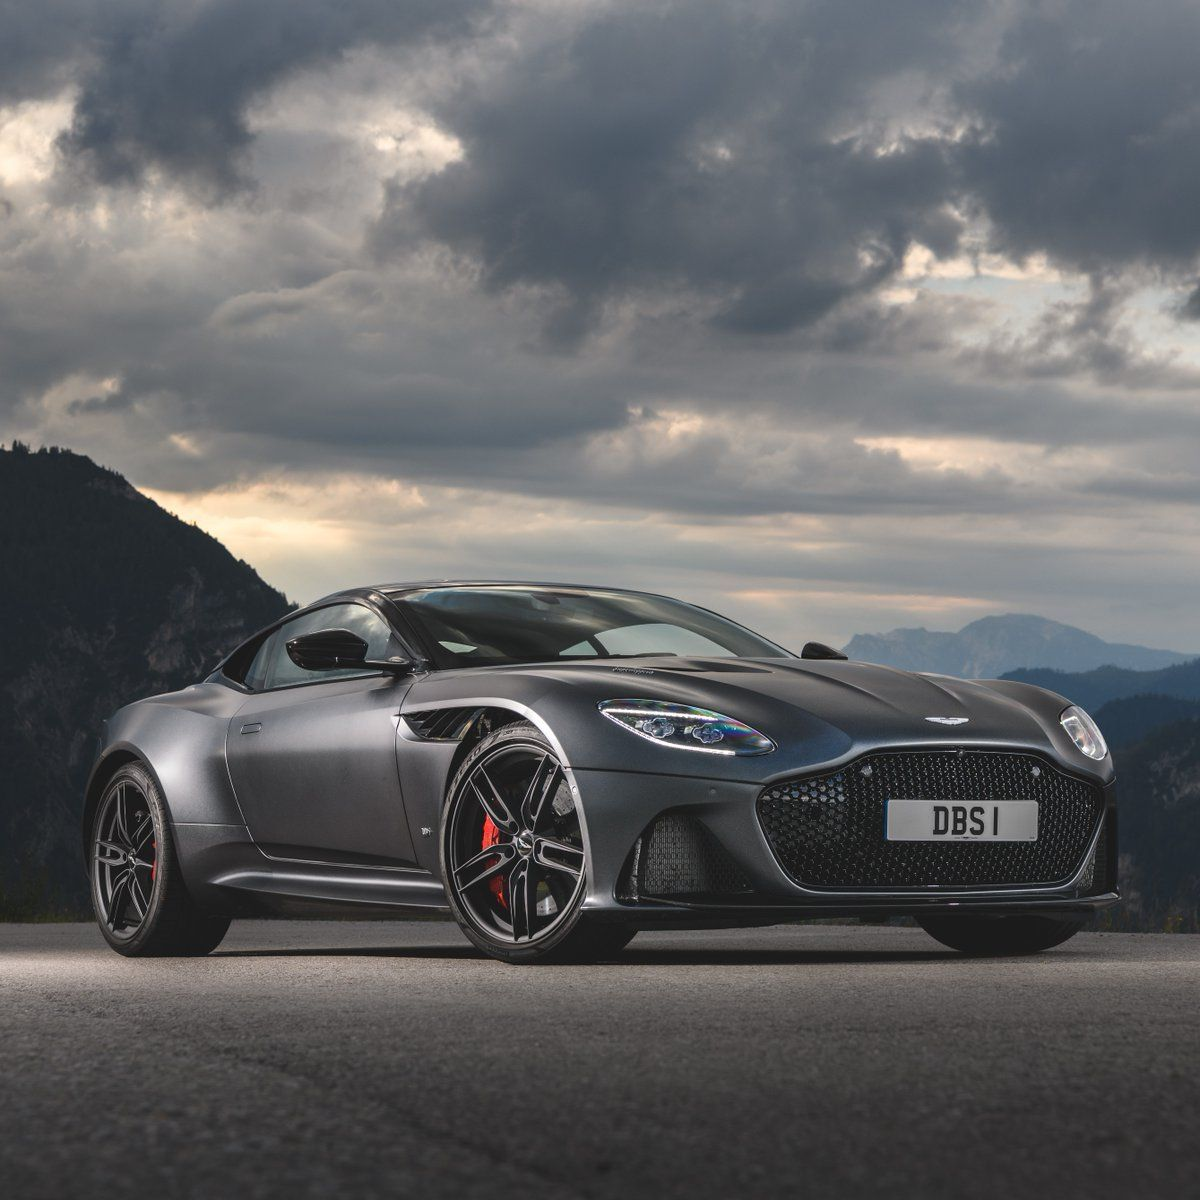 4 Aston Martins Will Co-Star in the New James Bond Movie